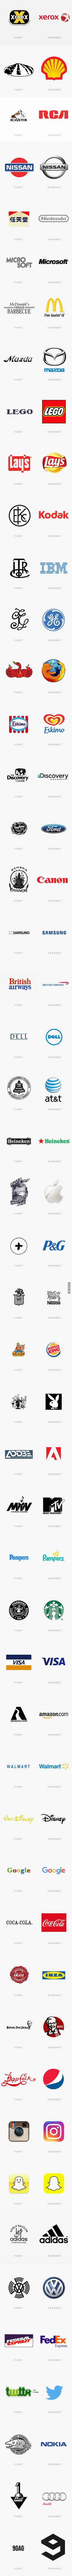 50 FIRST and current logos comparisons #9gag                              …